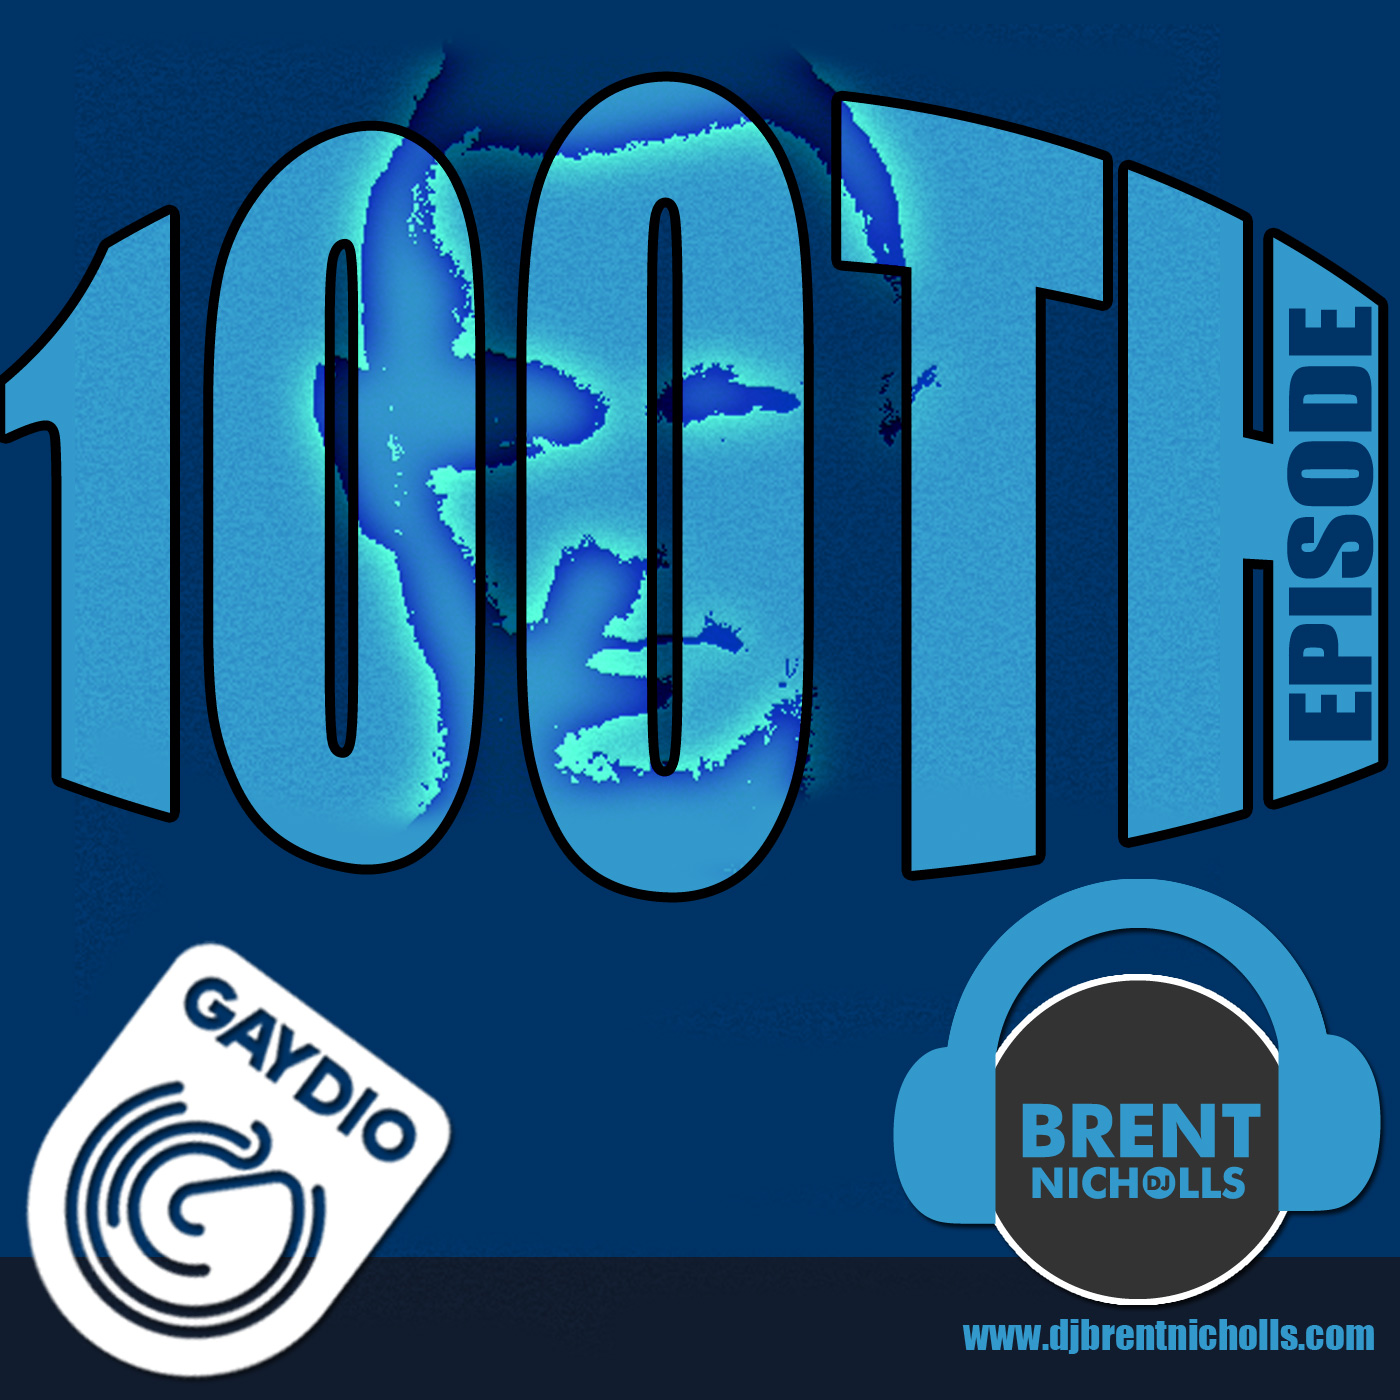 PODCAST: GAYDIO 100TH EPISODE